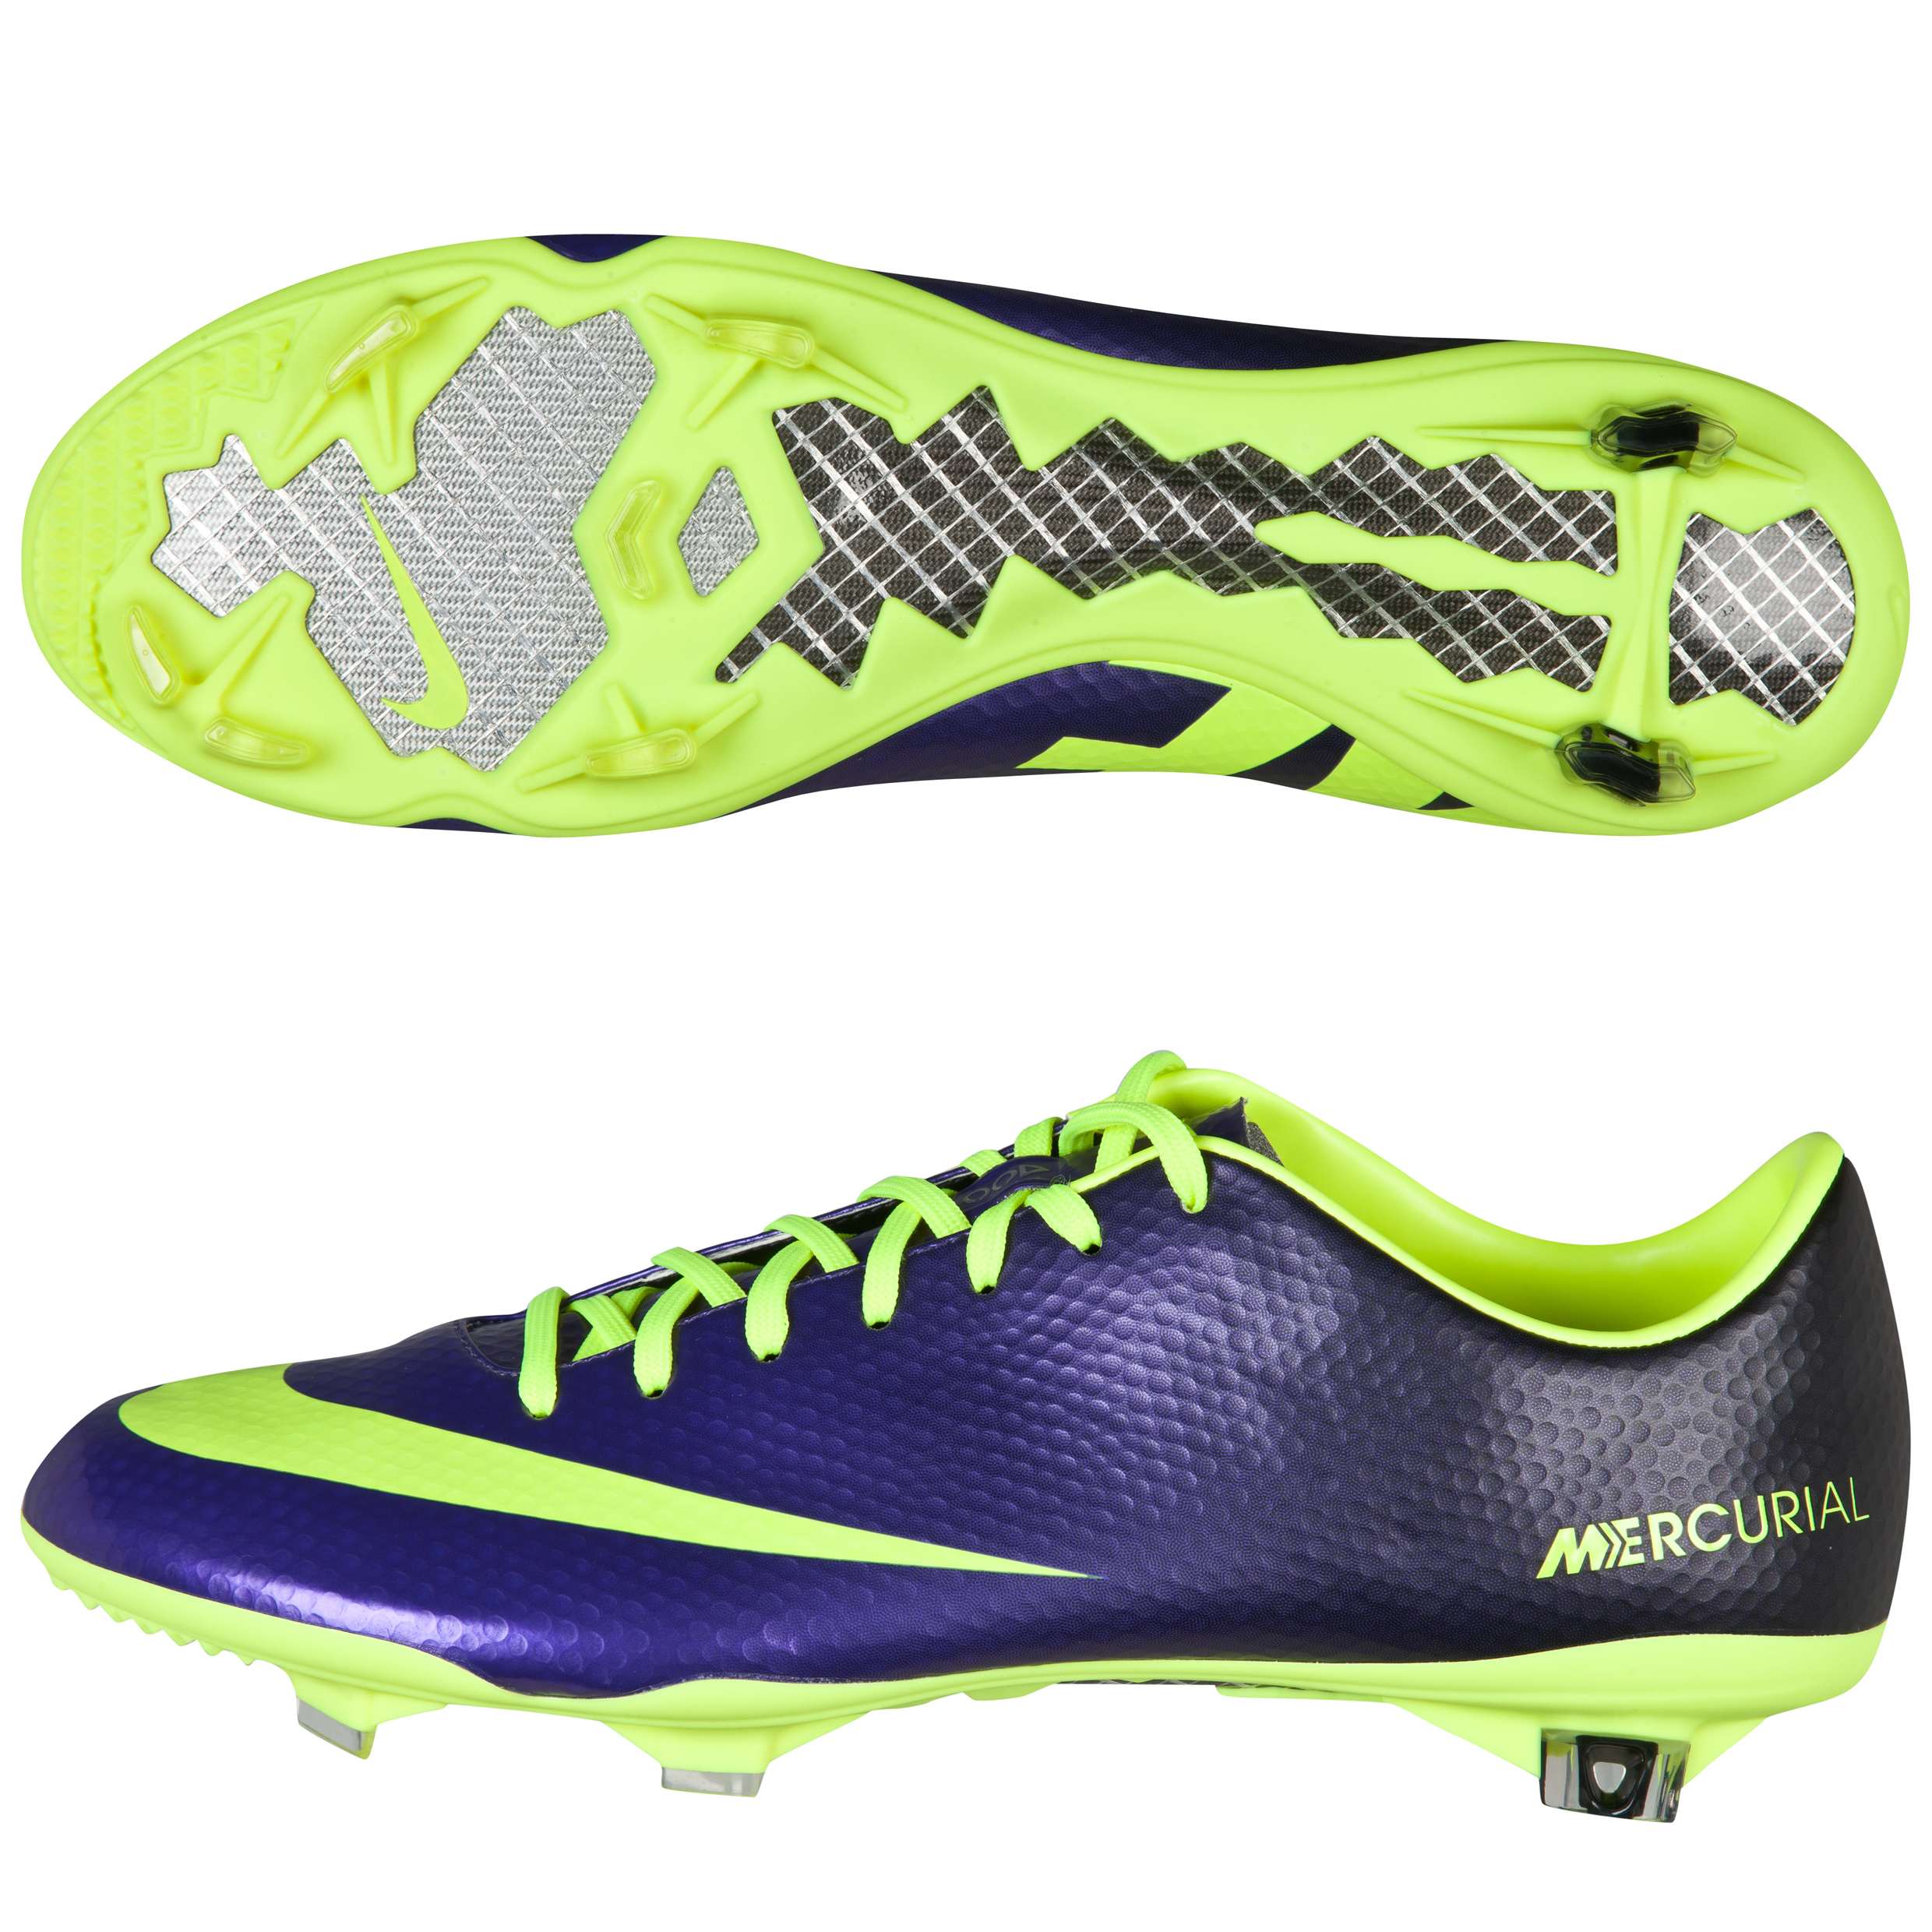 Nike Mercurial Vapor Ix Firm Ground Football Boots Purple